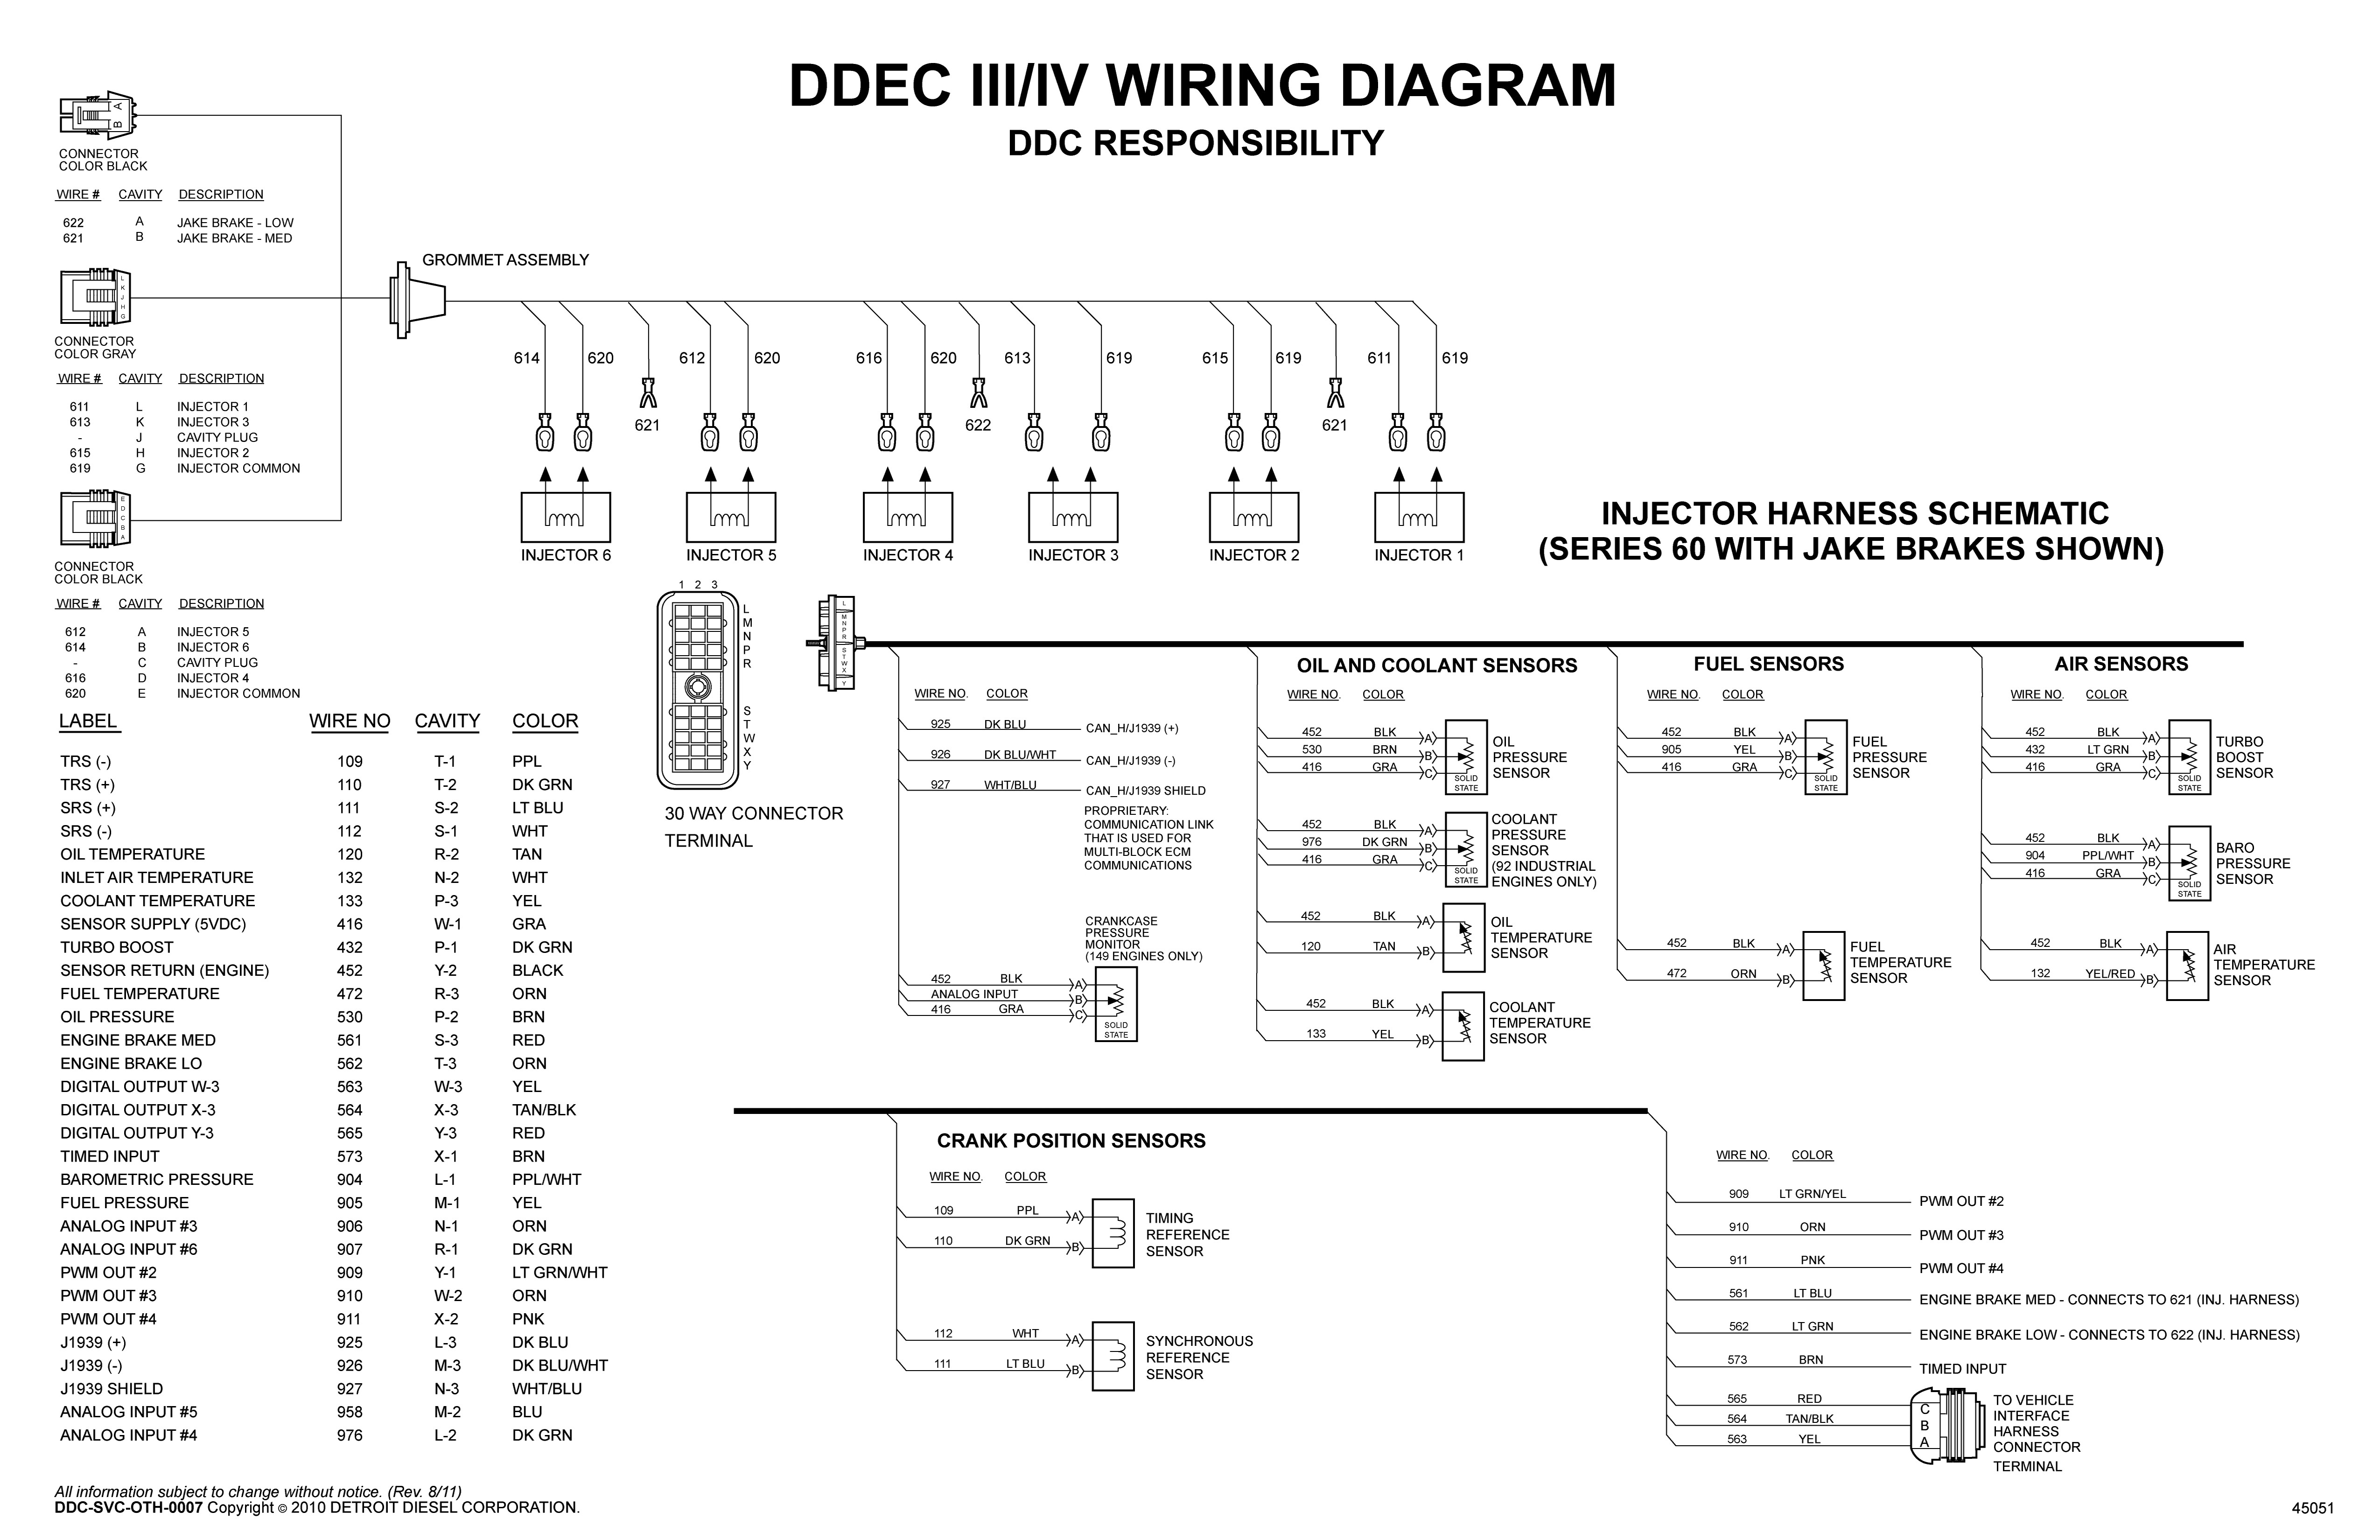 R33 Wiring Diagram Library Ford Diagramsescape Detroit Series 60 Ecm Diesel And Diagrams